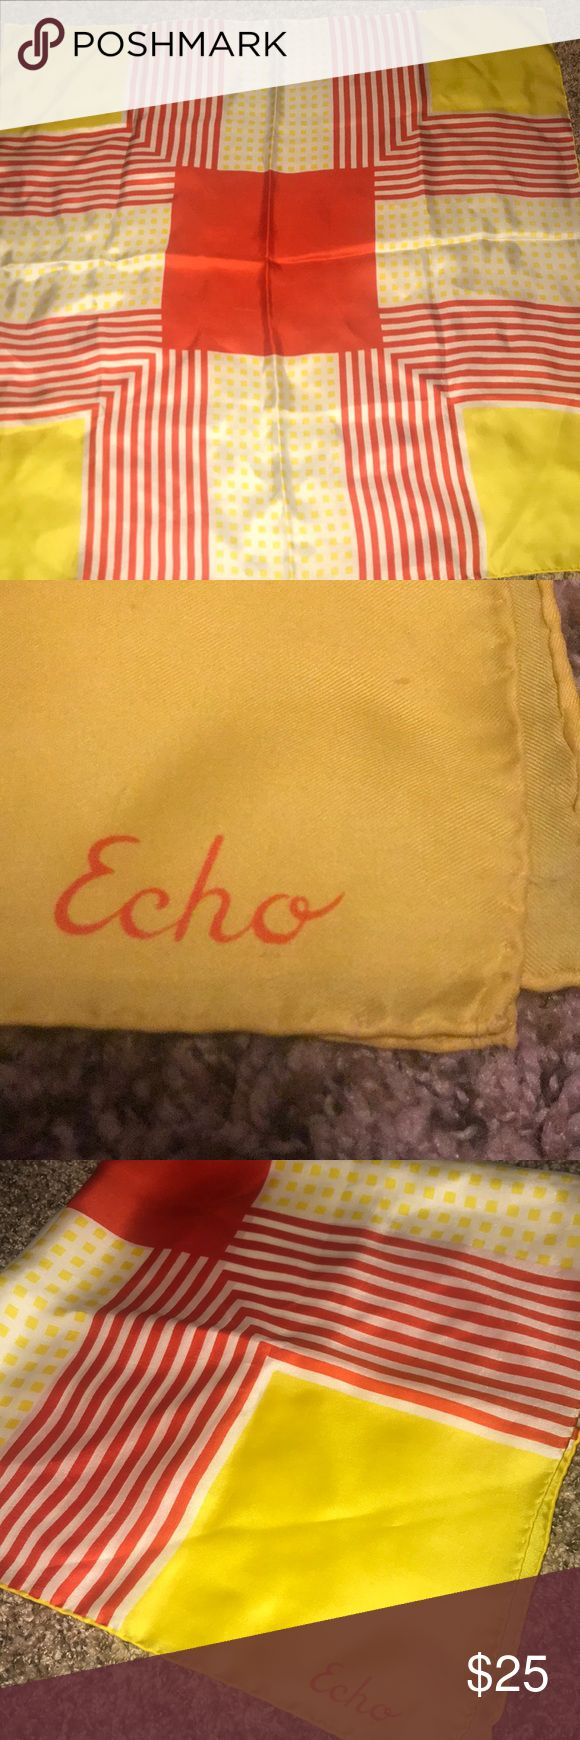 Echo scarf Colors are red, white and yellow, stripes and dots design. Designer Echo. Echo Accessories Scarves & Wraps